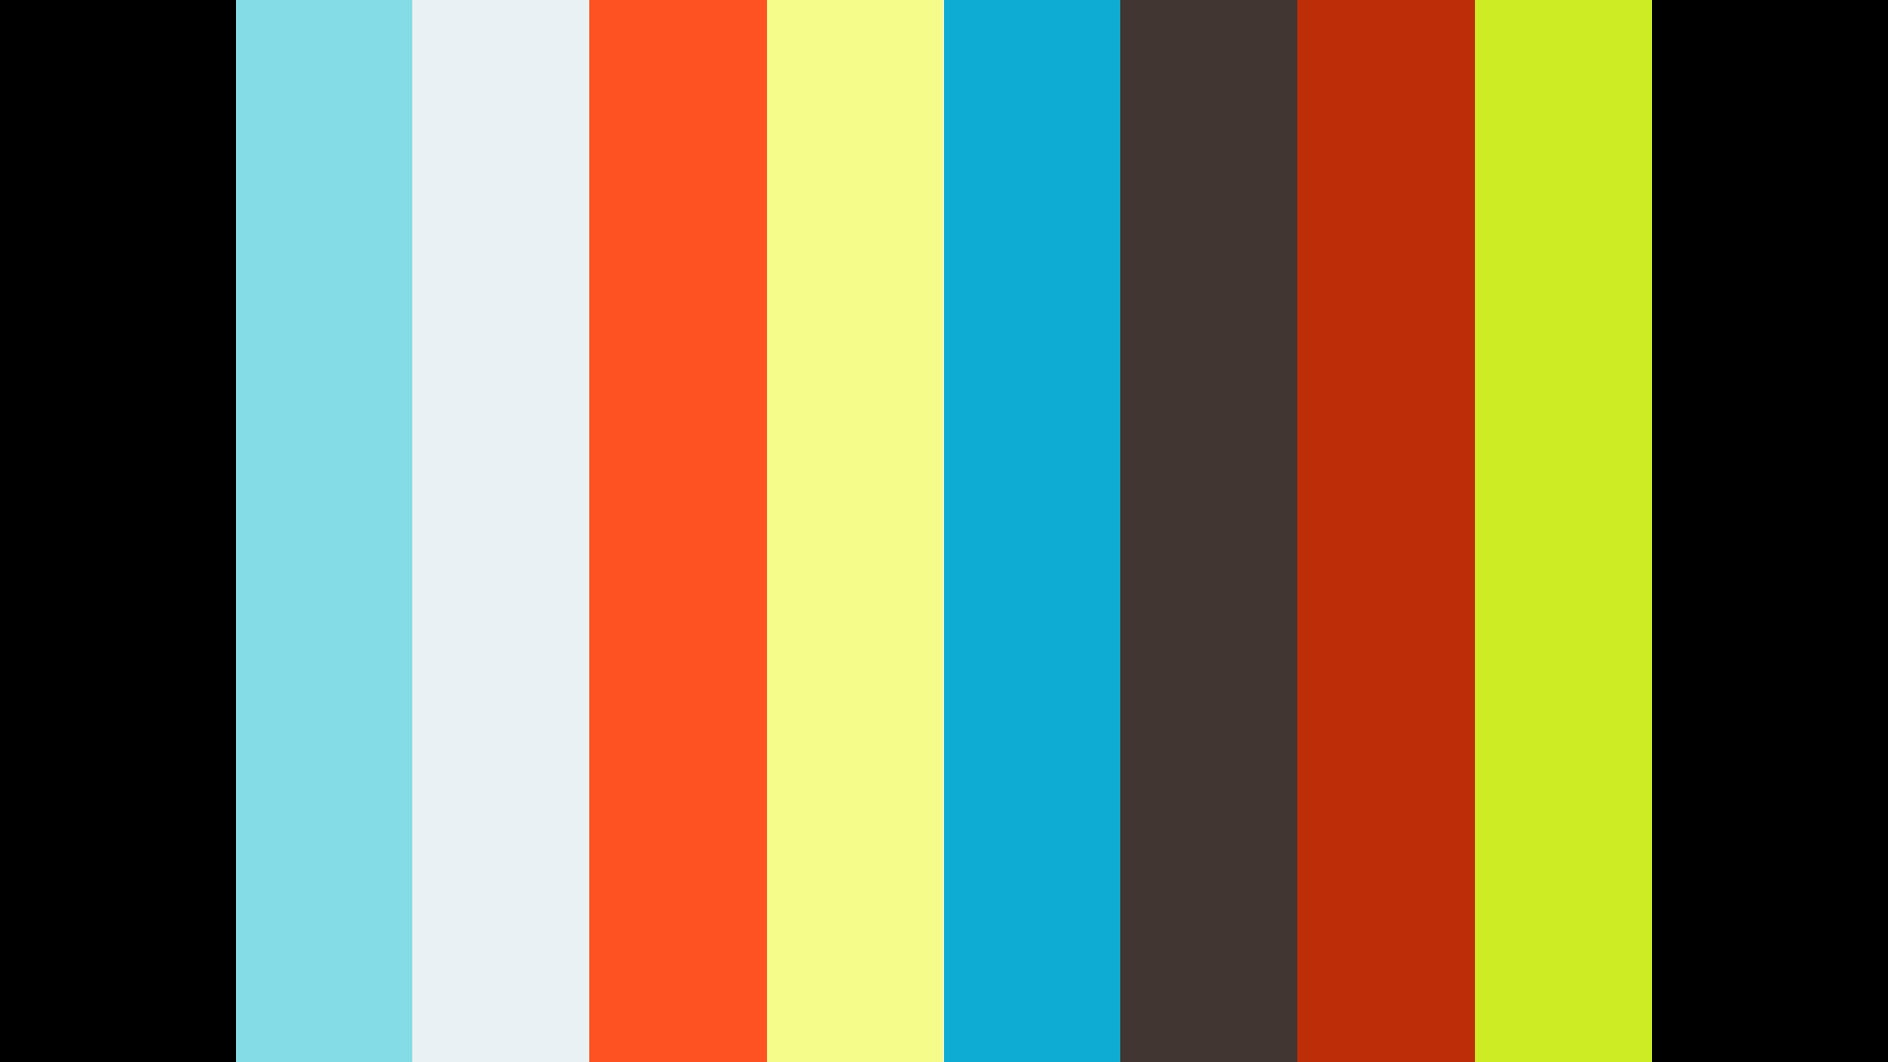 Carol Guzy – News Photographer - Eddie Adams Workshop 2016